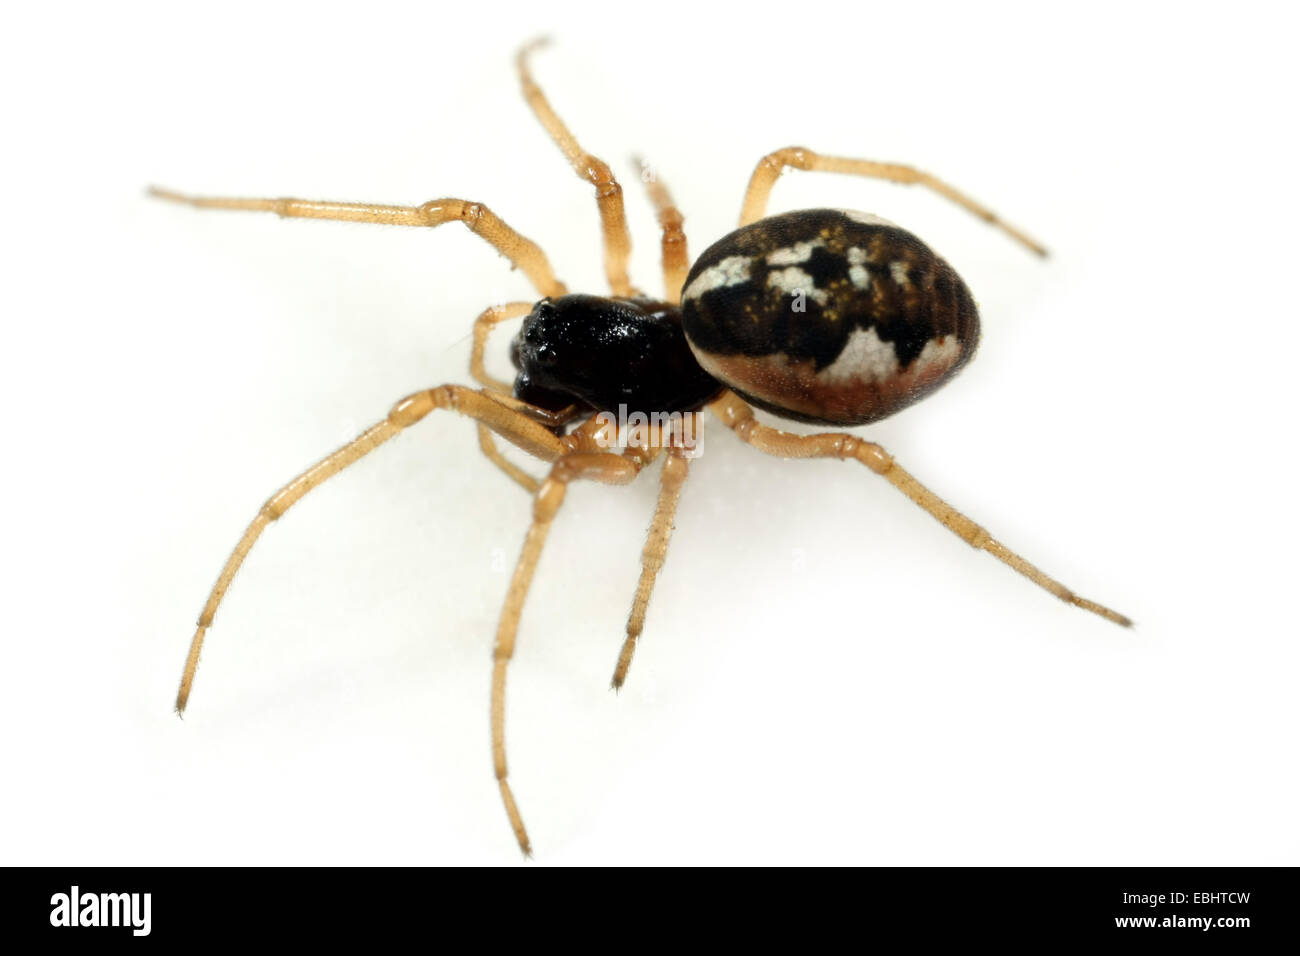 A female longjawed orbweaver (Pachygnatha degeeri) on white background. Longjawed orbweavers are part of the family - Stock Image